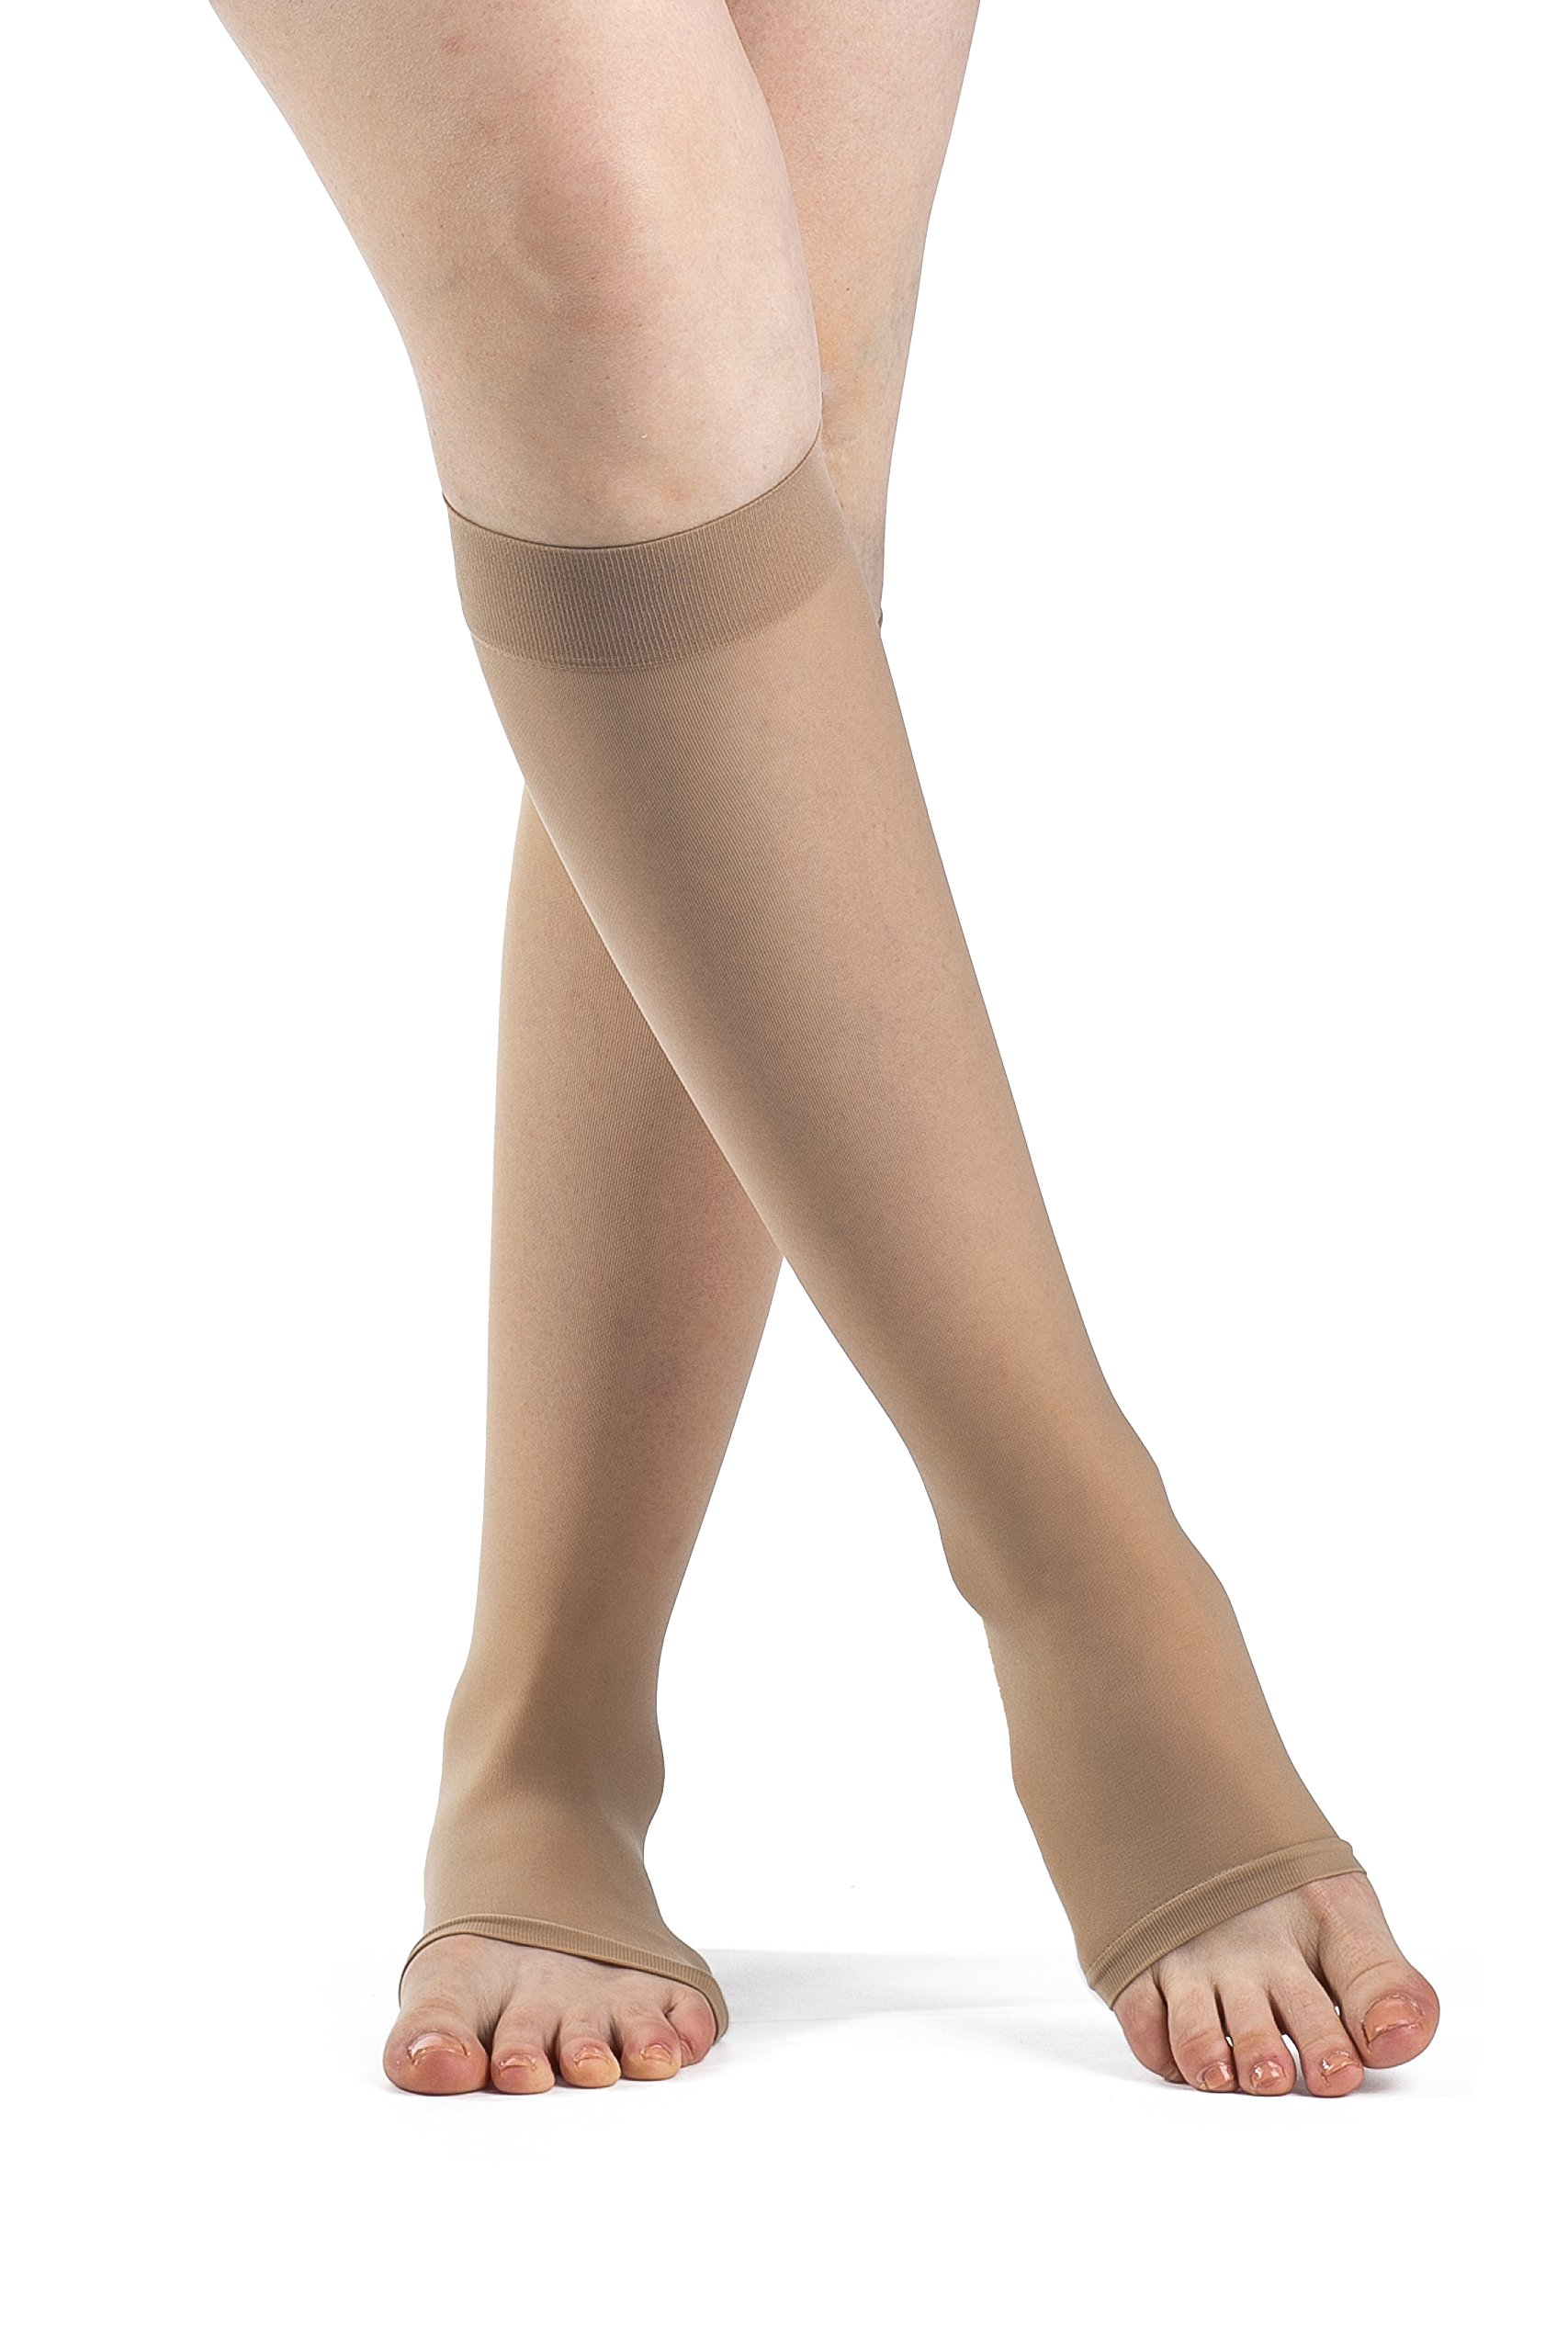 SIGVARIS Women's EVERSHEER 780 Open Toe Calf Compression Socks 20-30mmHg